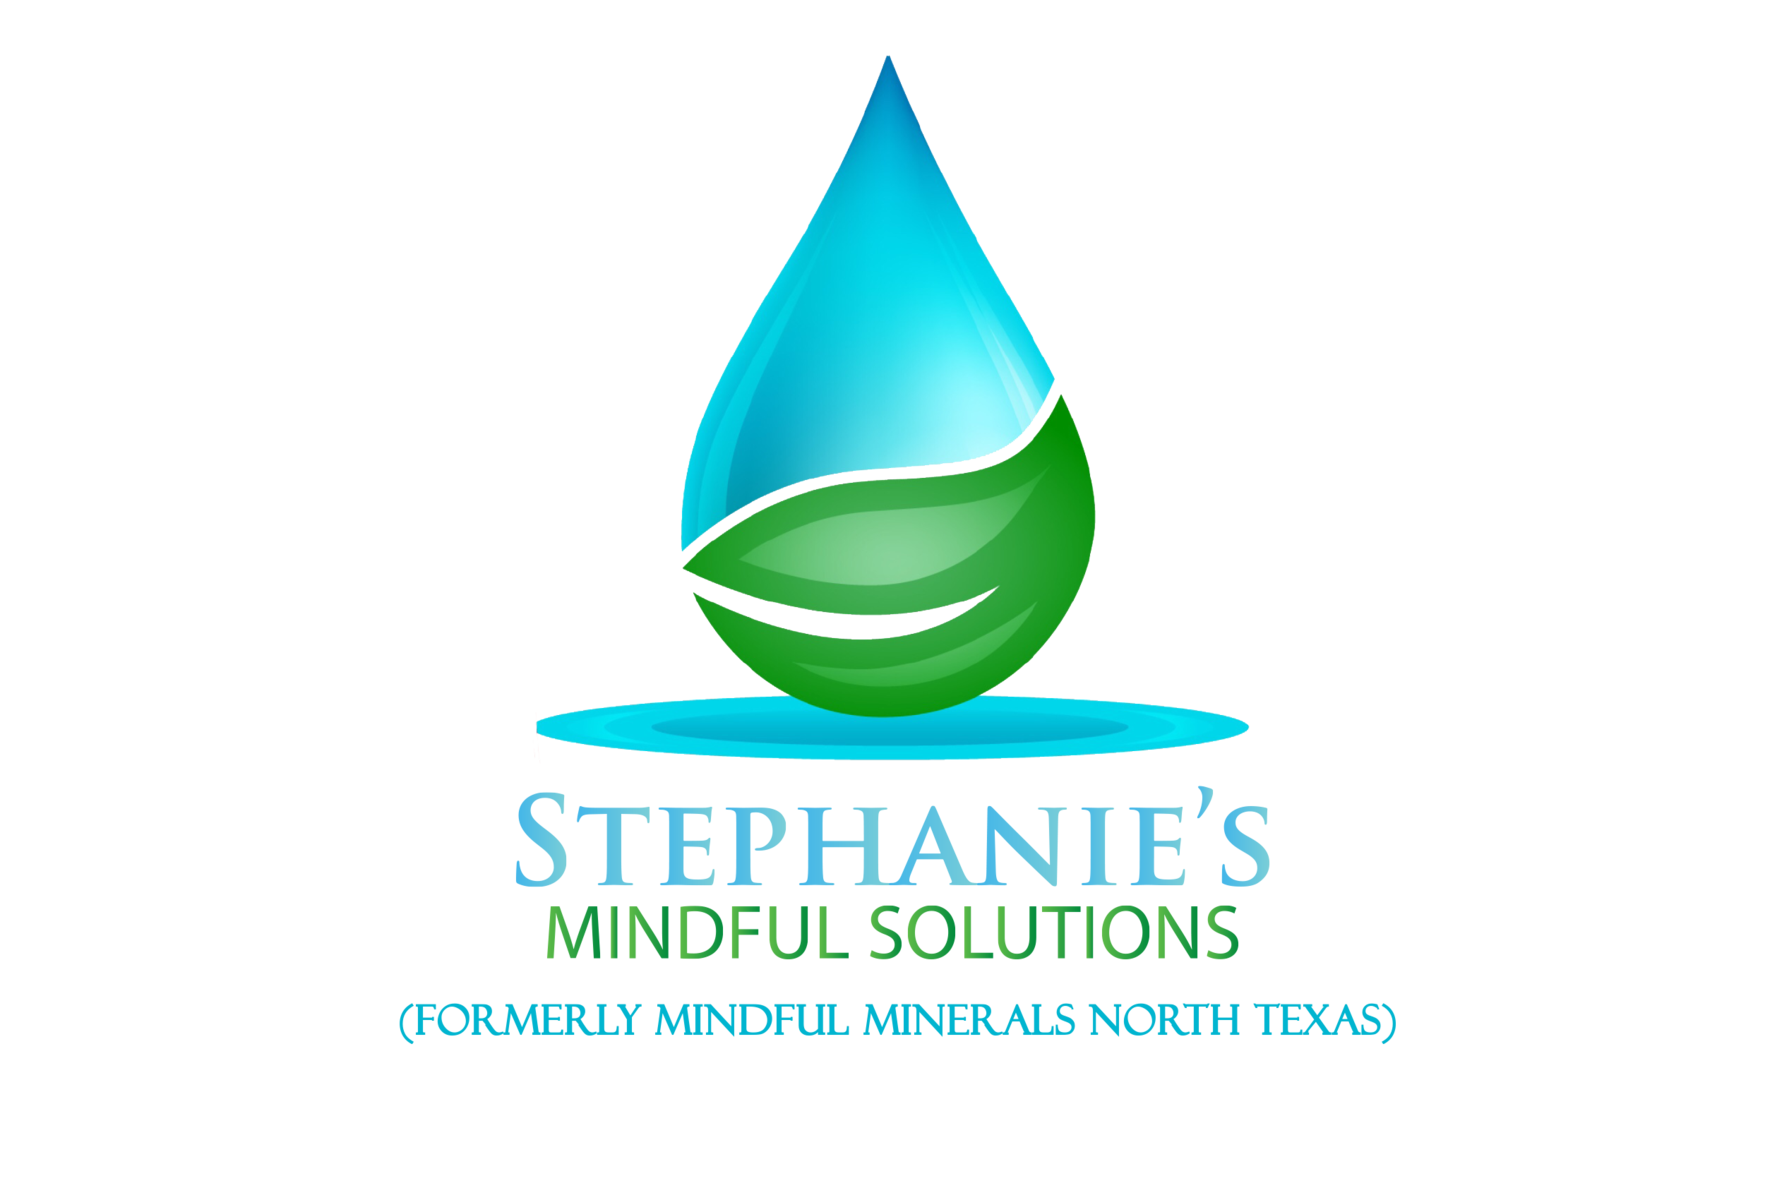 MMNT LLC – Mindful Minerals North Texas